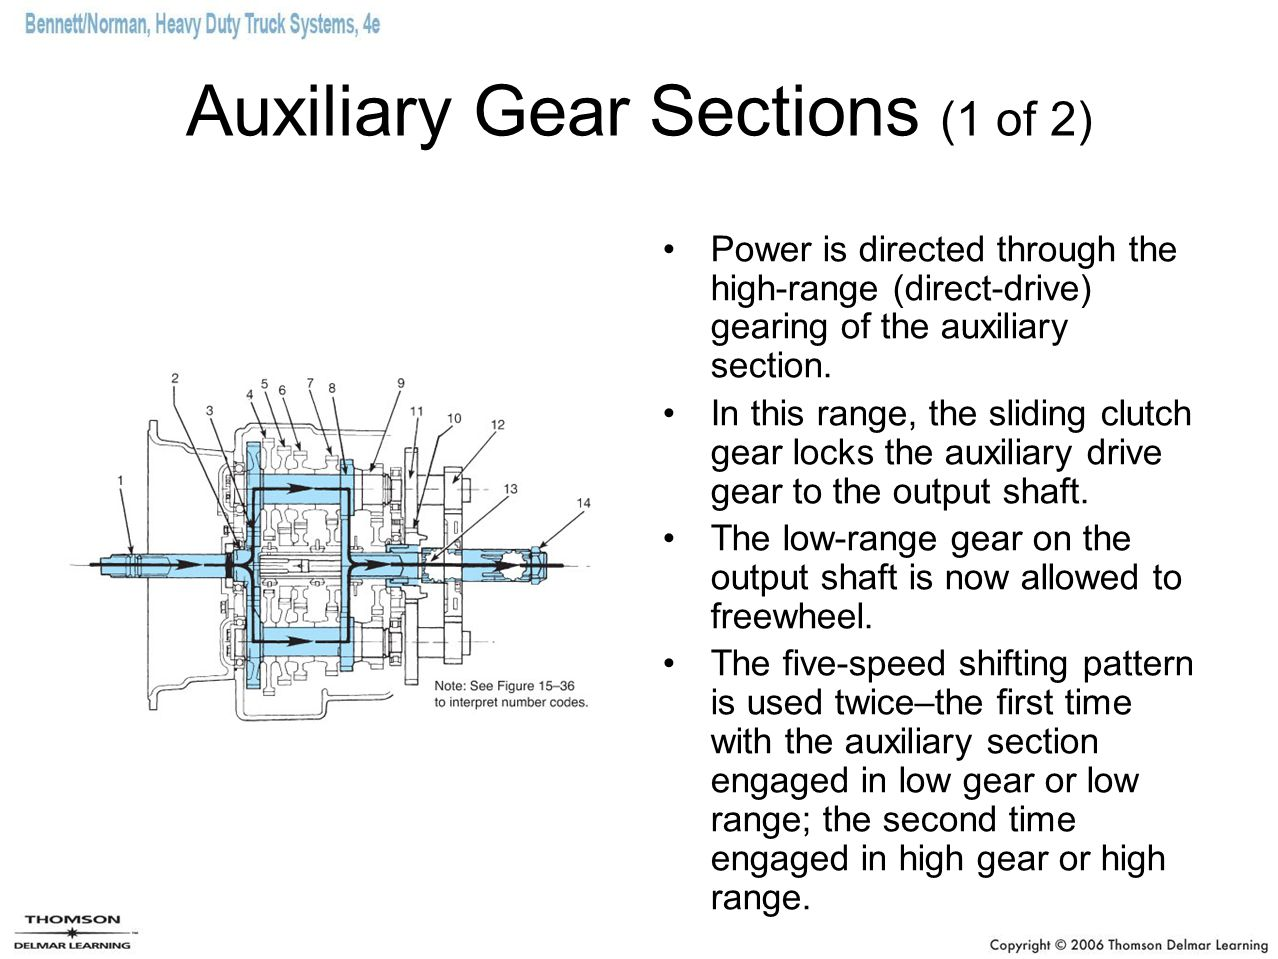 Auxiliary Gear Sections (1 of 2)